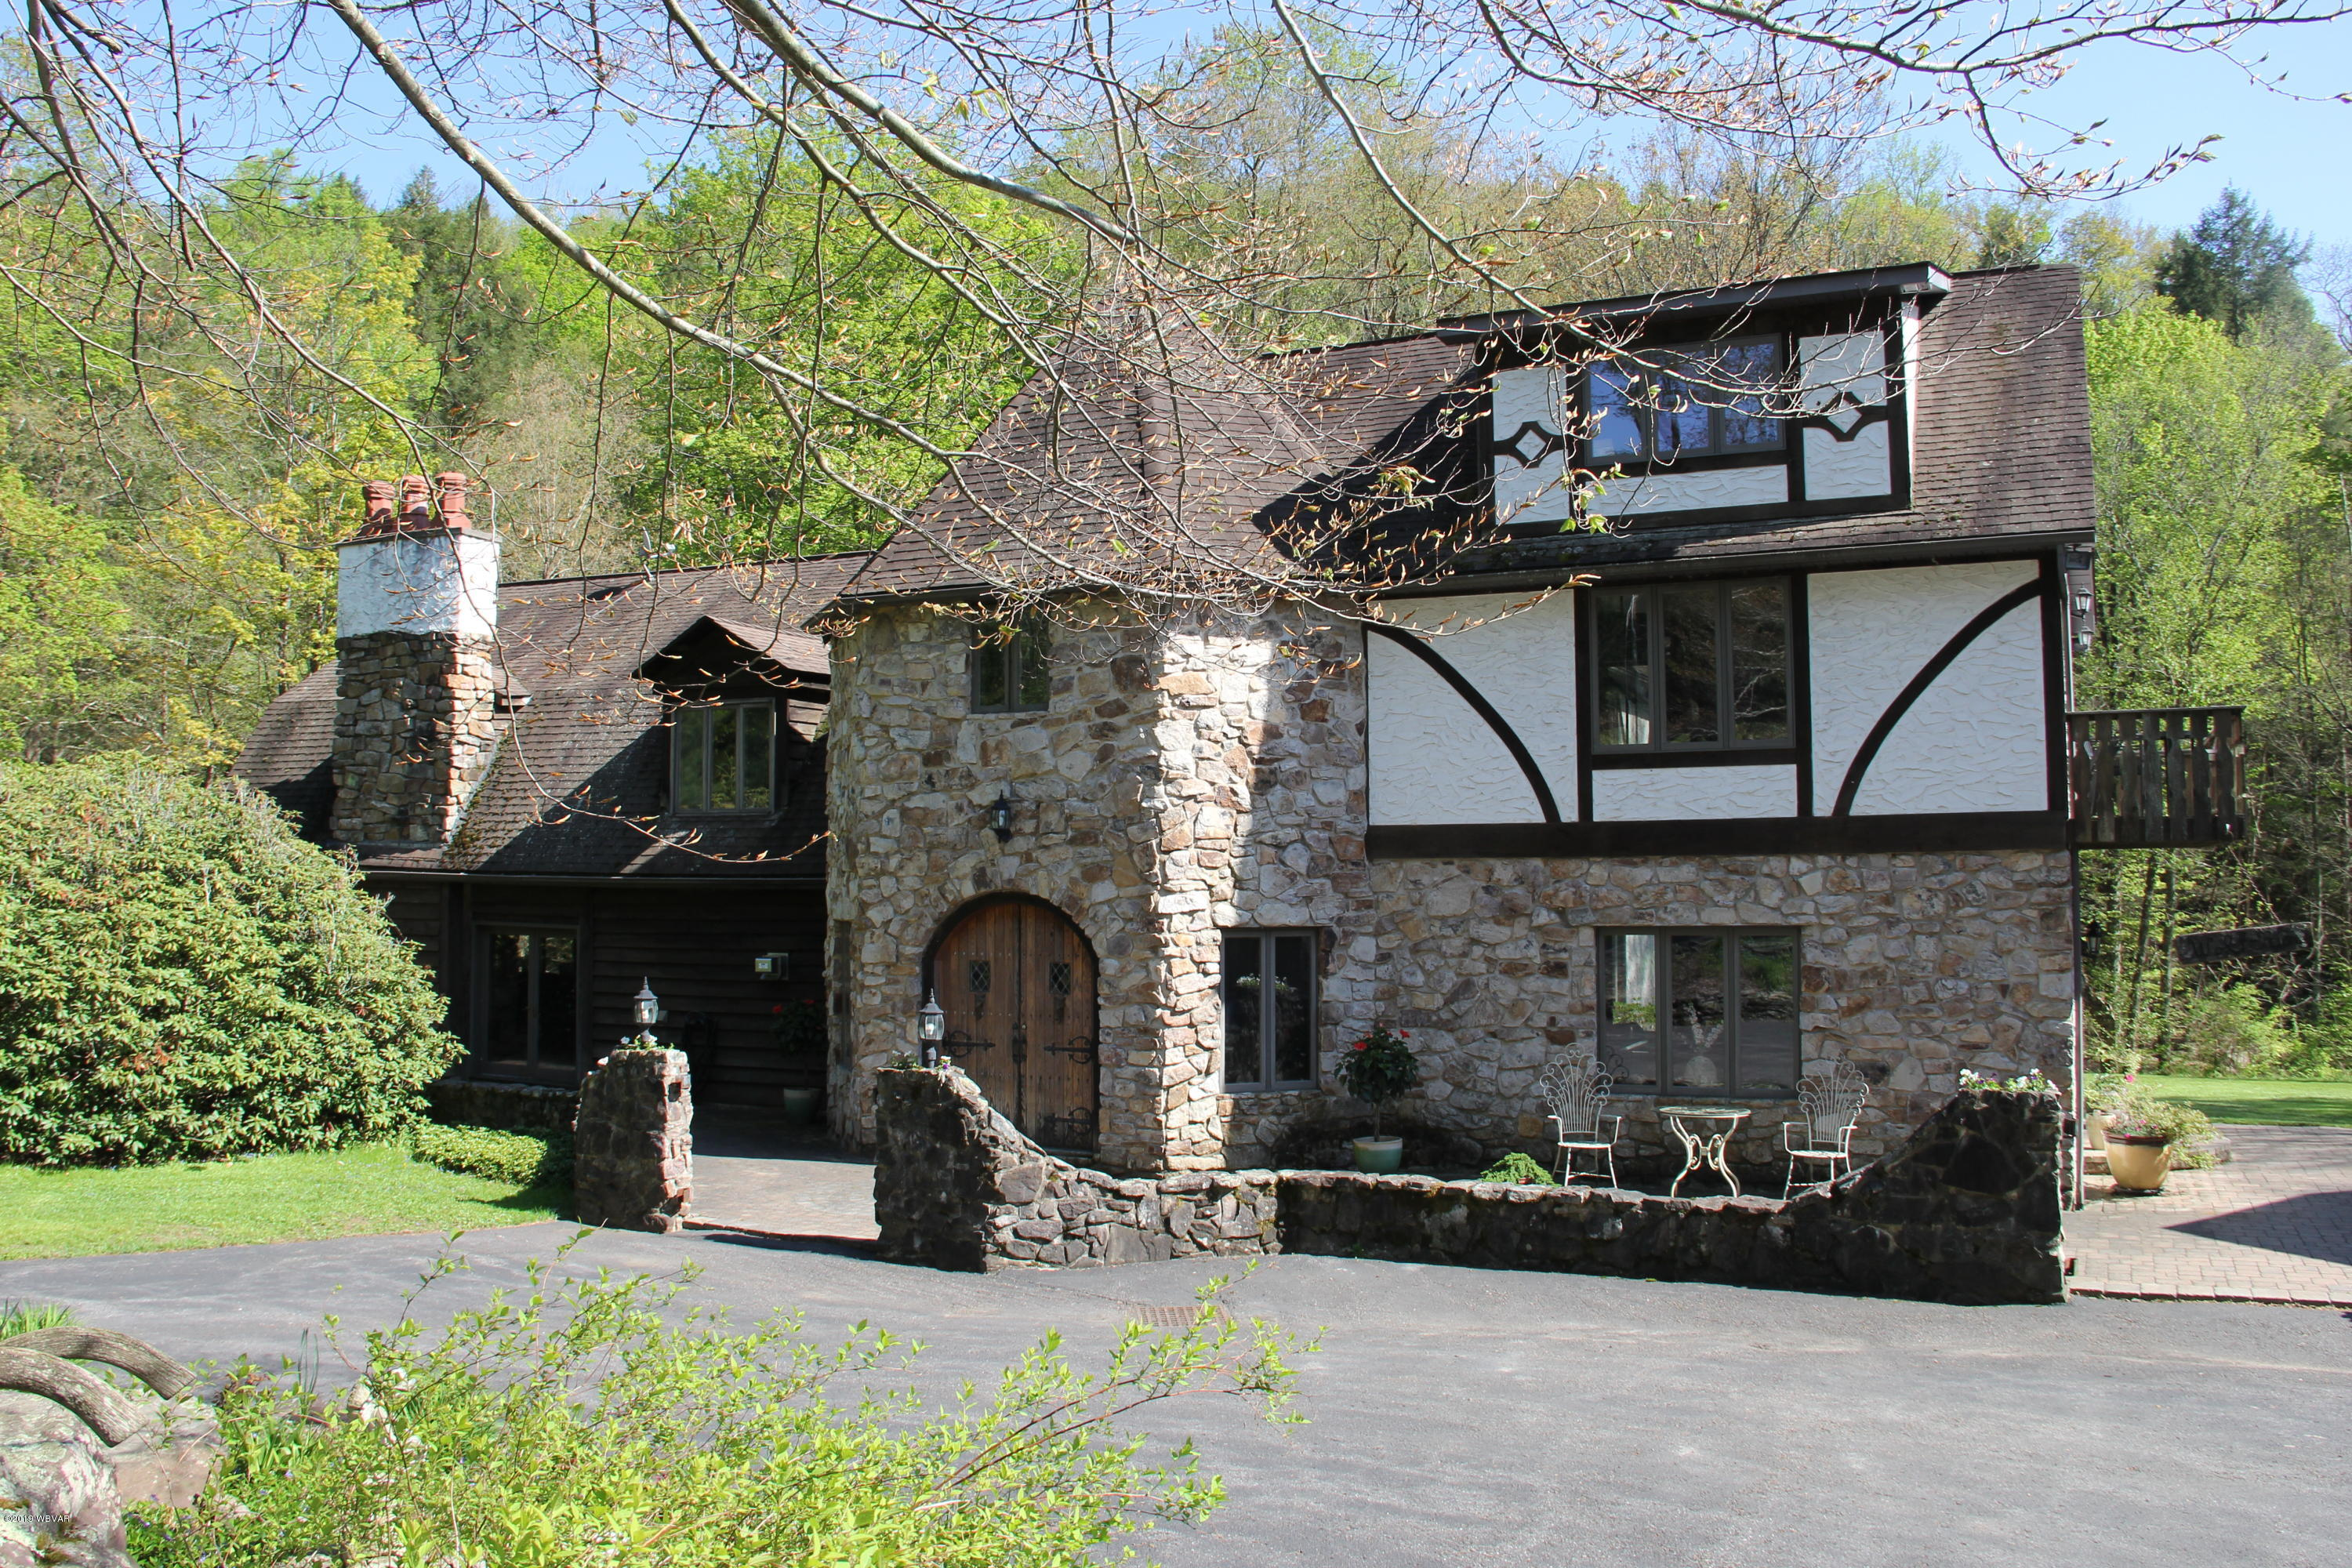 508 CABBAGE HOLLOW ROAD,Williamsport,PA 17701,4 Bedrooms Bedrooms,4 BathroomsBathrooms,Residential,CABBAGE HOLLOW,WB-87353